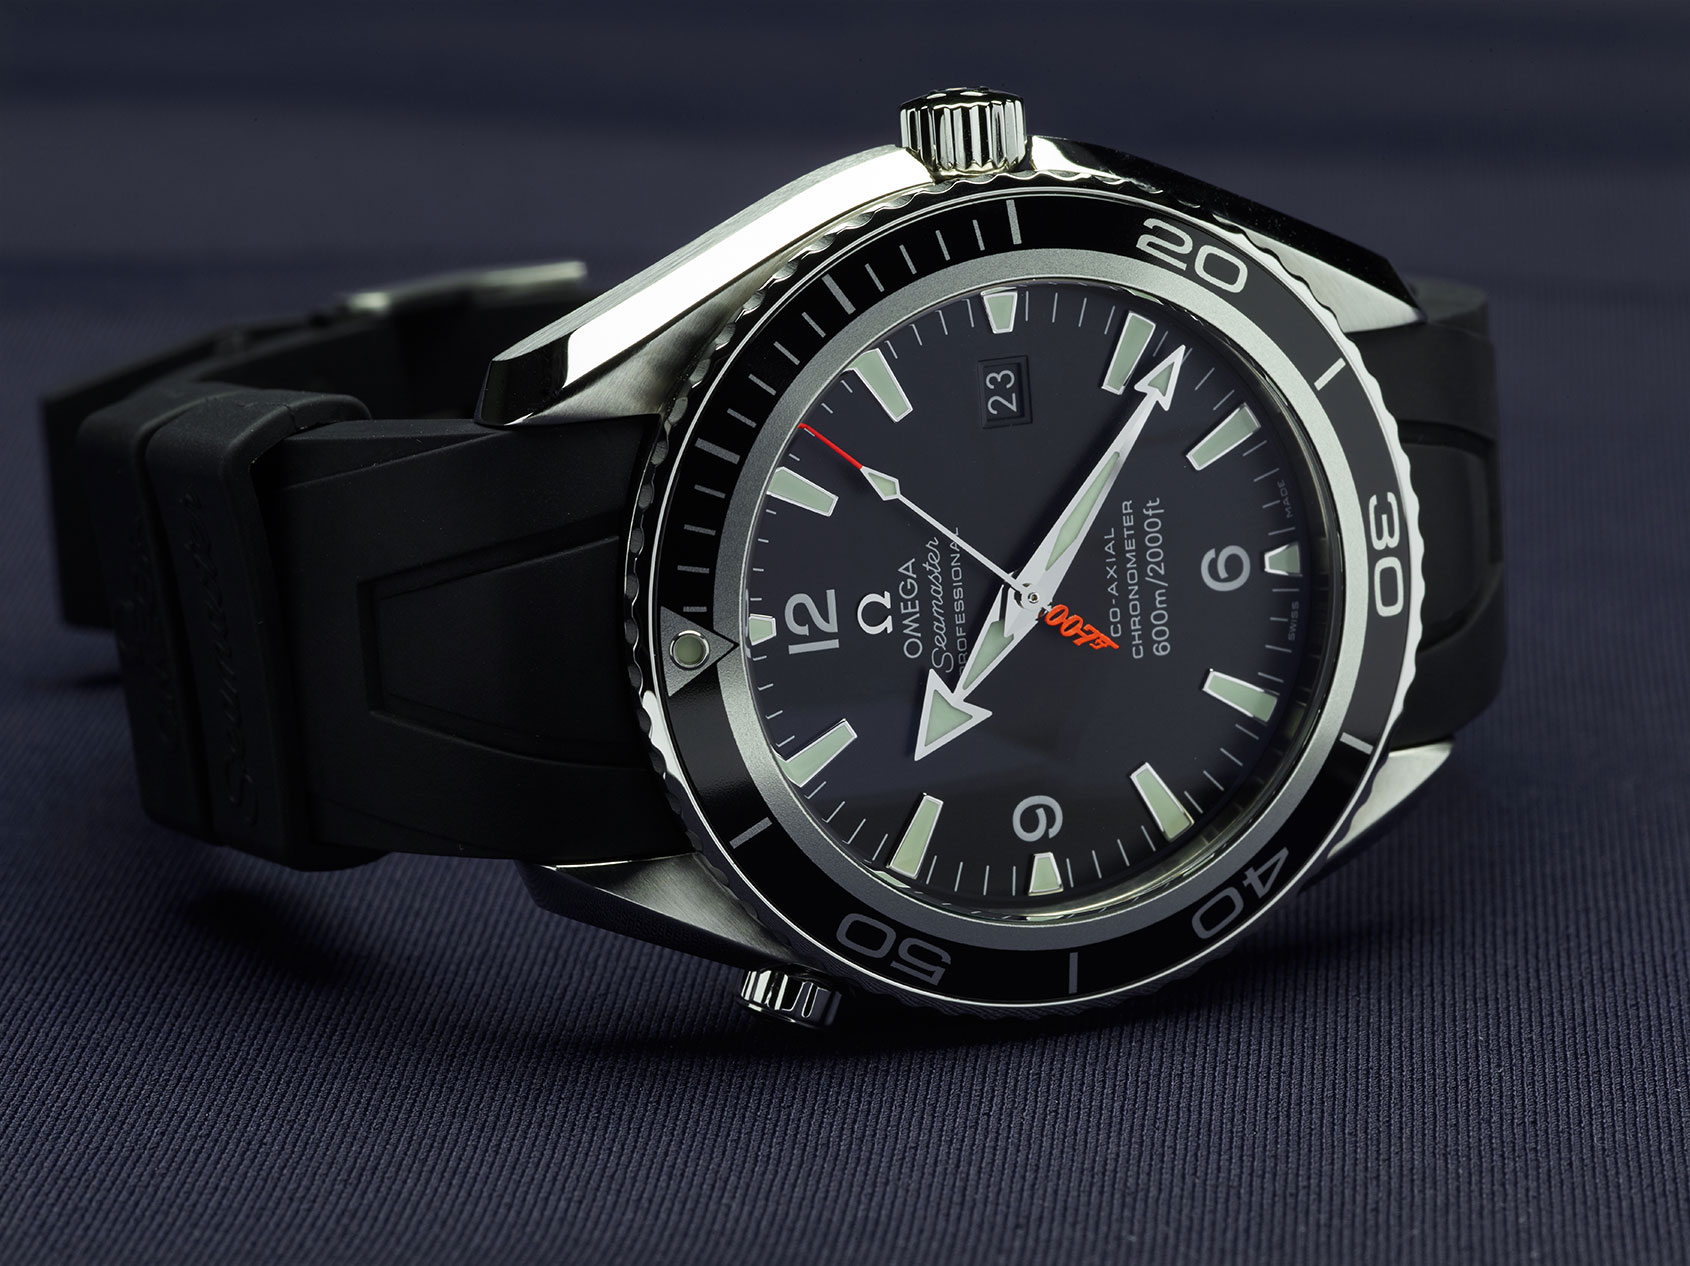 Omega seamaster 007 casino royale edition casino topaze sans telechargement